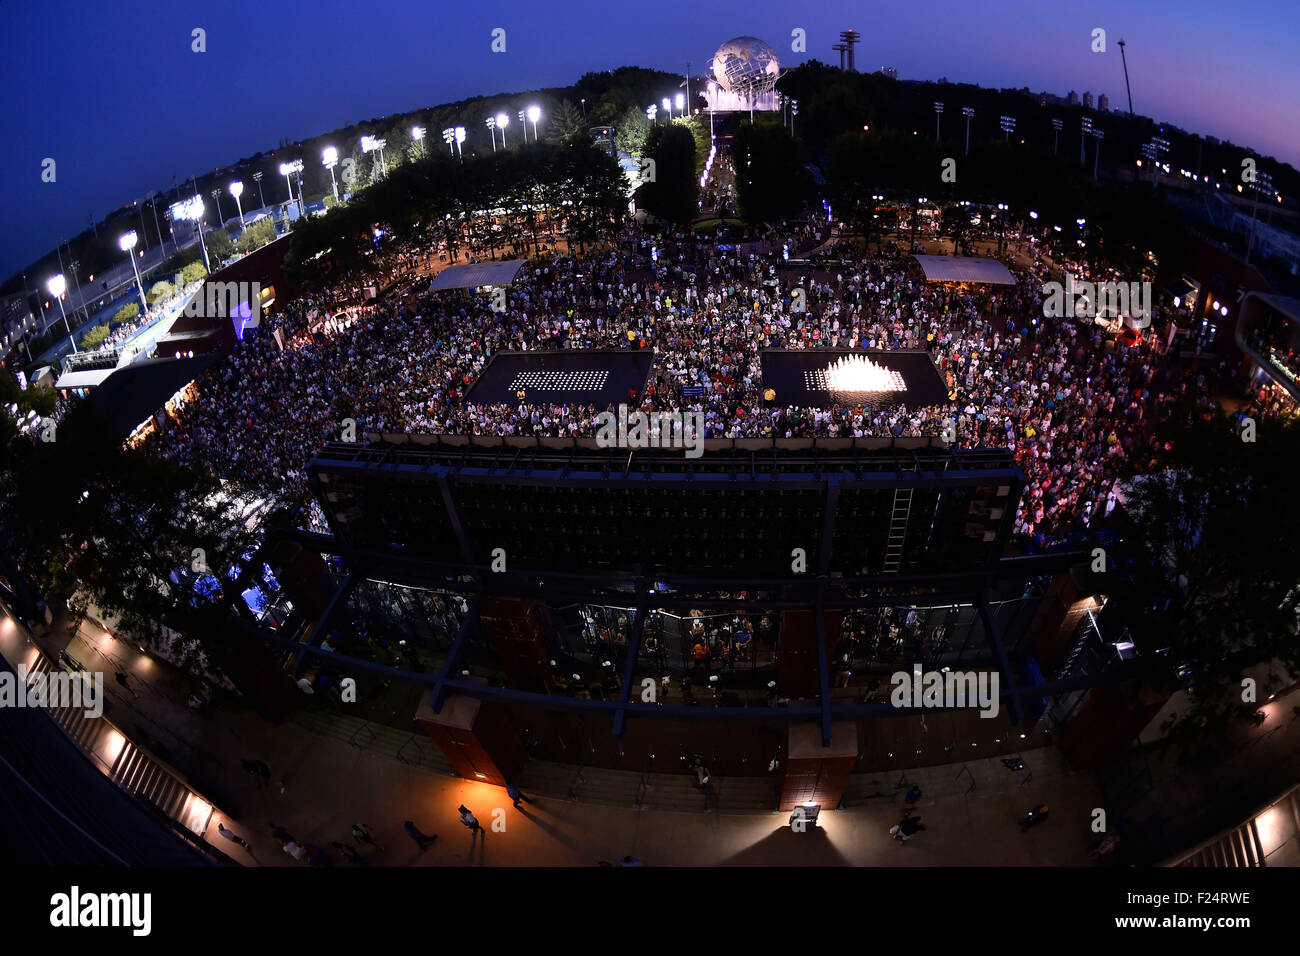 Flushing Meadows, New York, USA. 08th Sep, 2015. U.S. Open Tennis Championships at the USTA Billie Jean King National - Stock Image